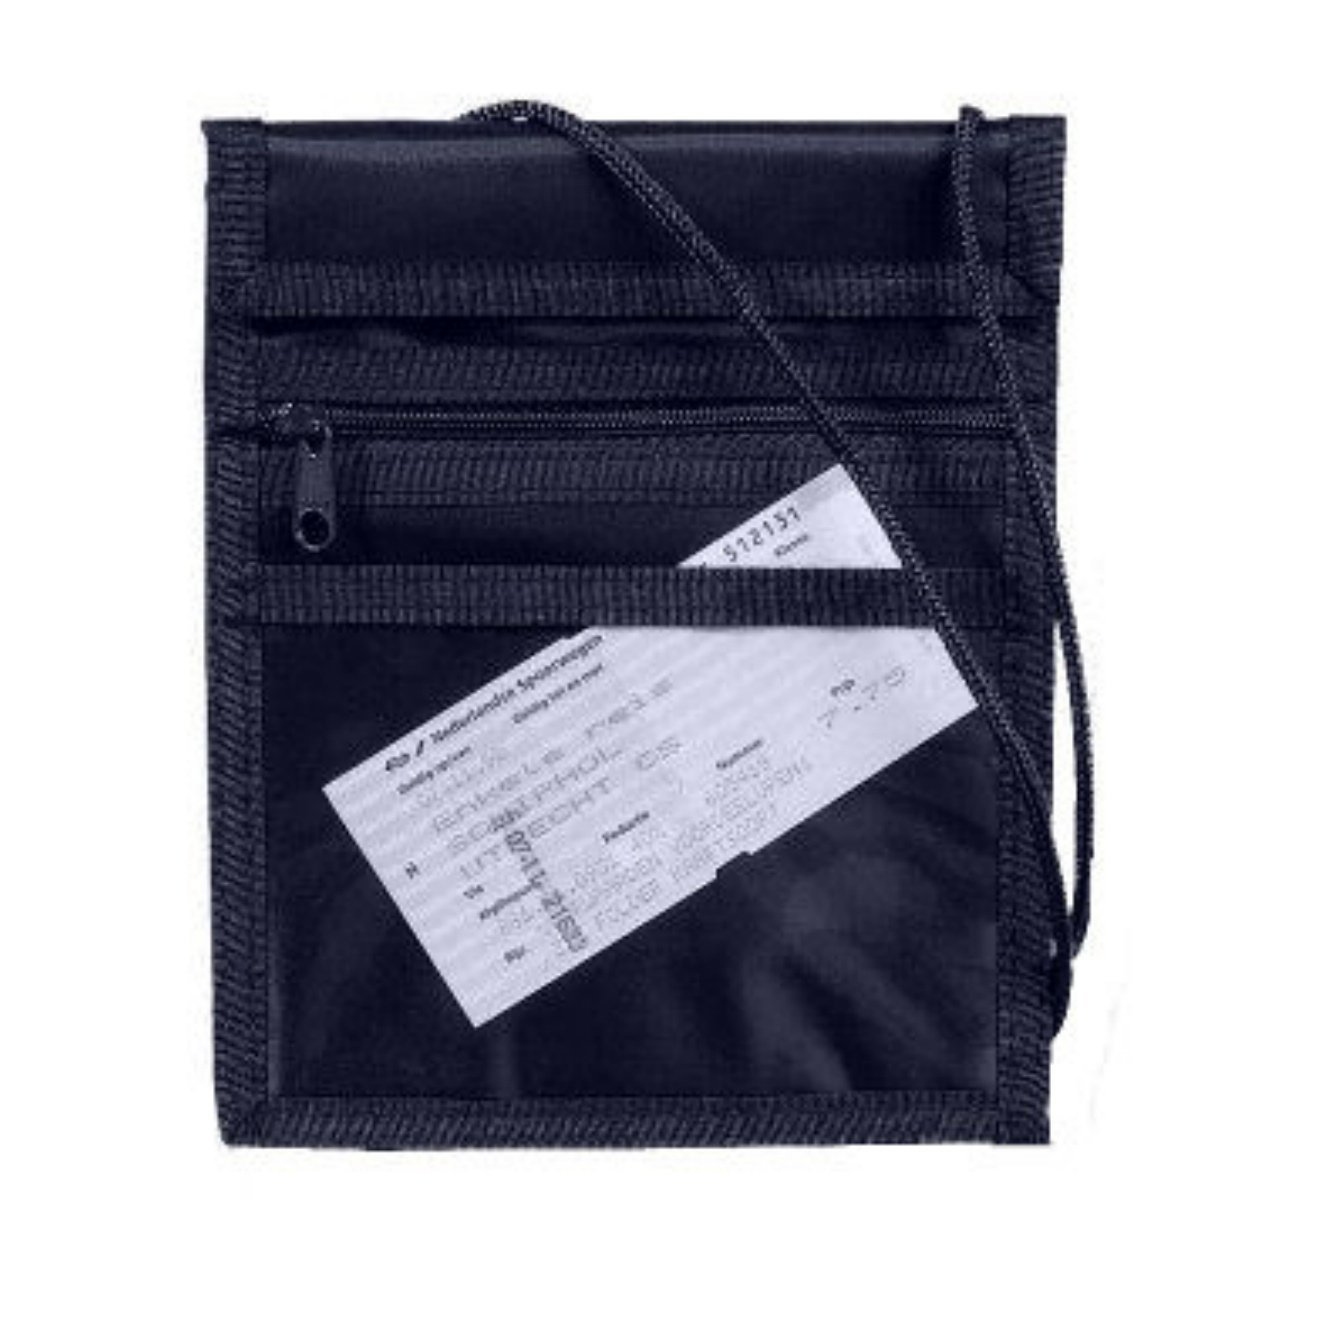 Security Neck Wallet - Passport. Money Pouch. (Navy)